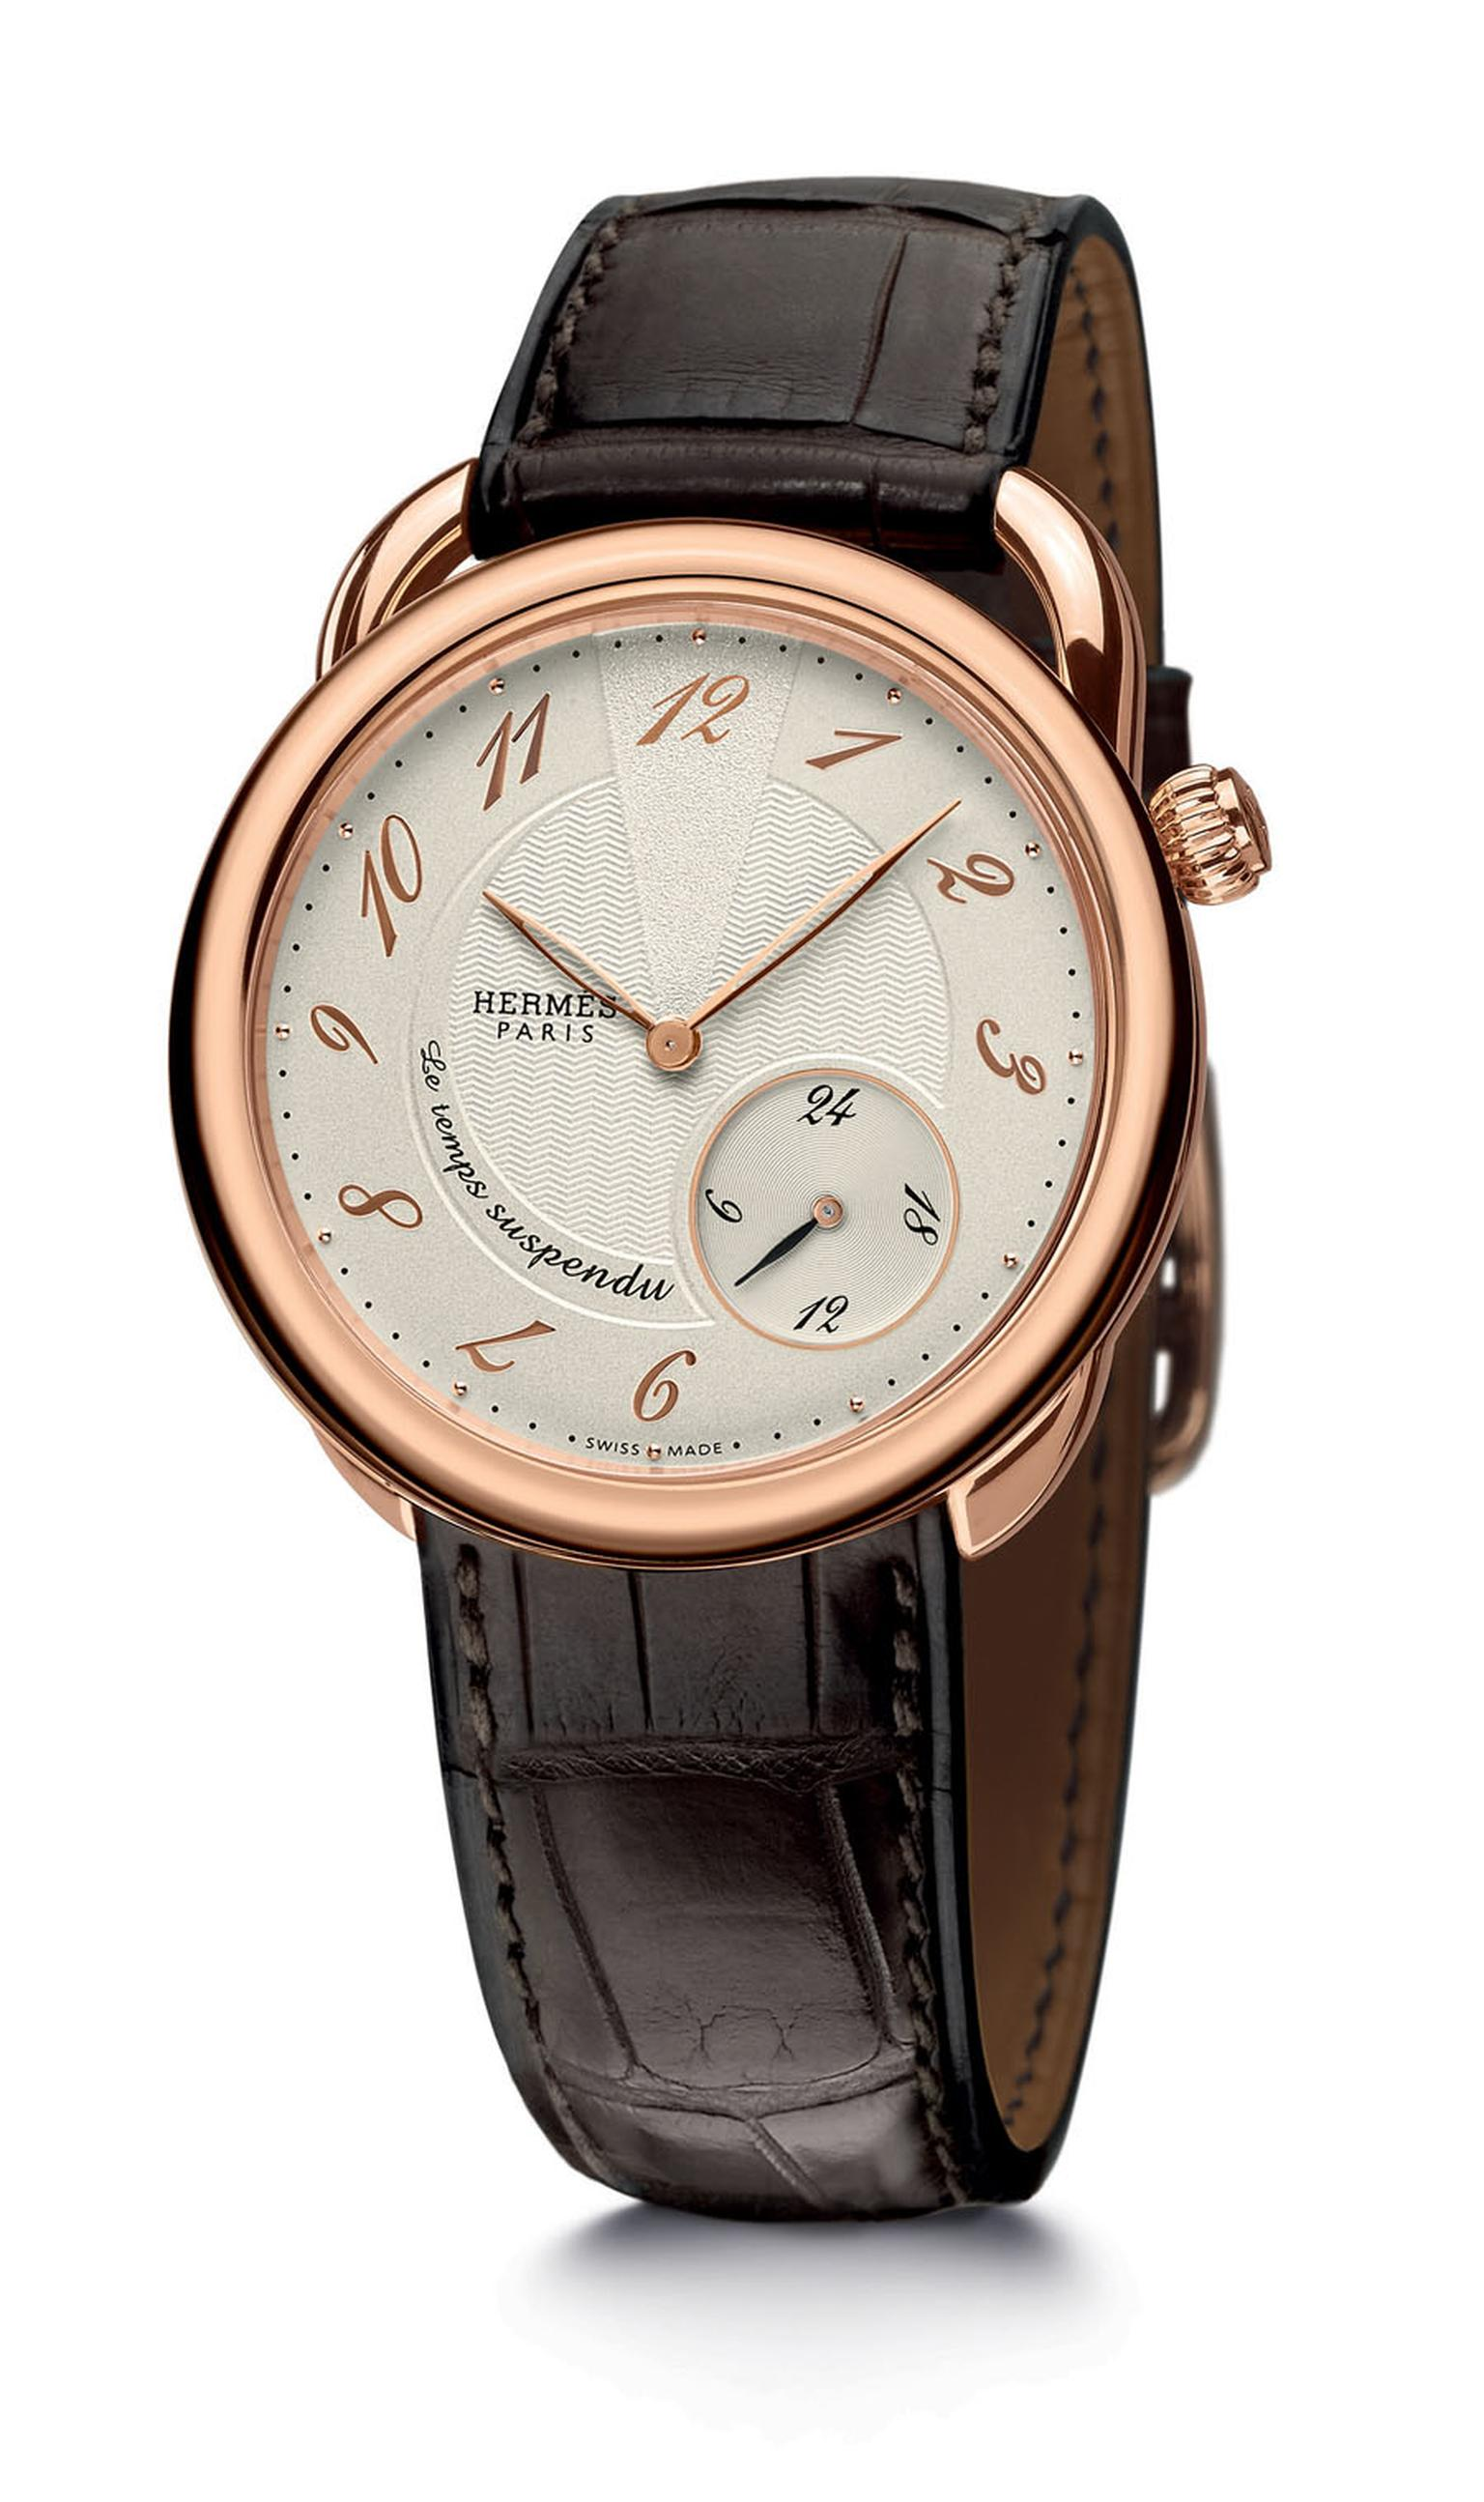 HermesWomensArceauWatchCollection7.jpg